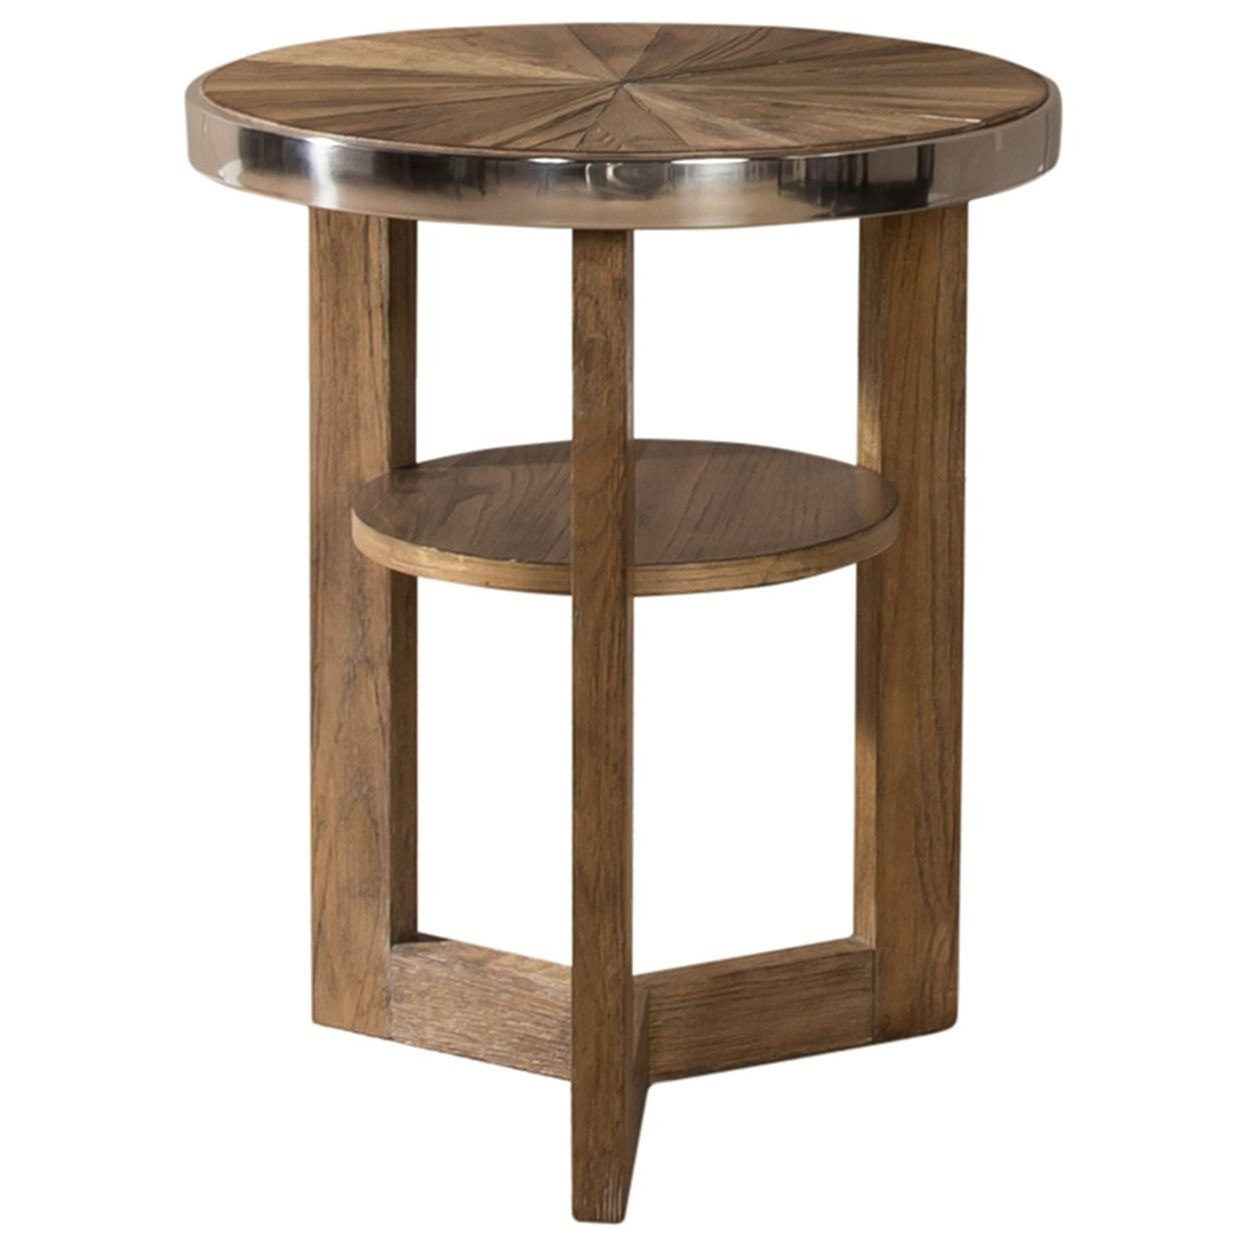 Omega Round Chair Side Table by Sarah Randolph Designs at Virginia Furniture Market